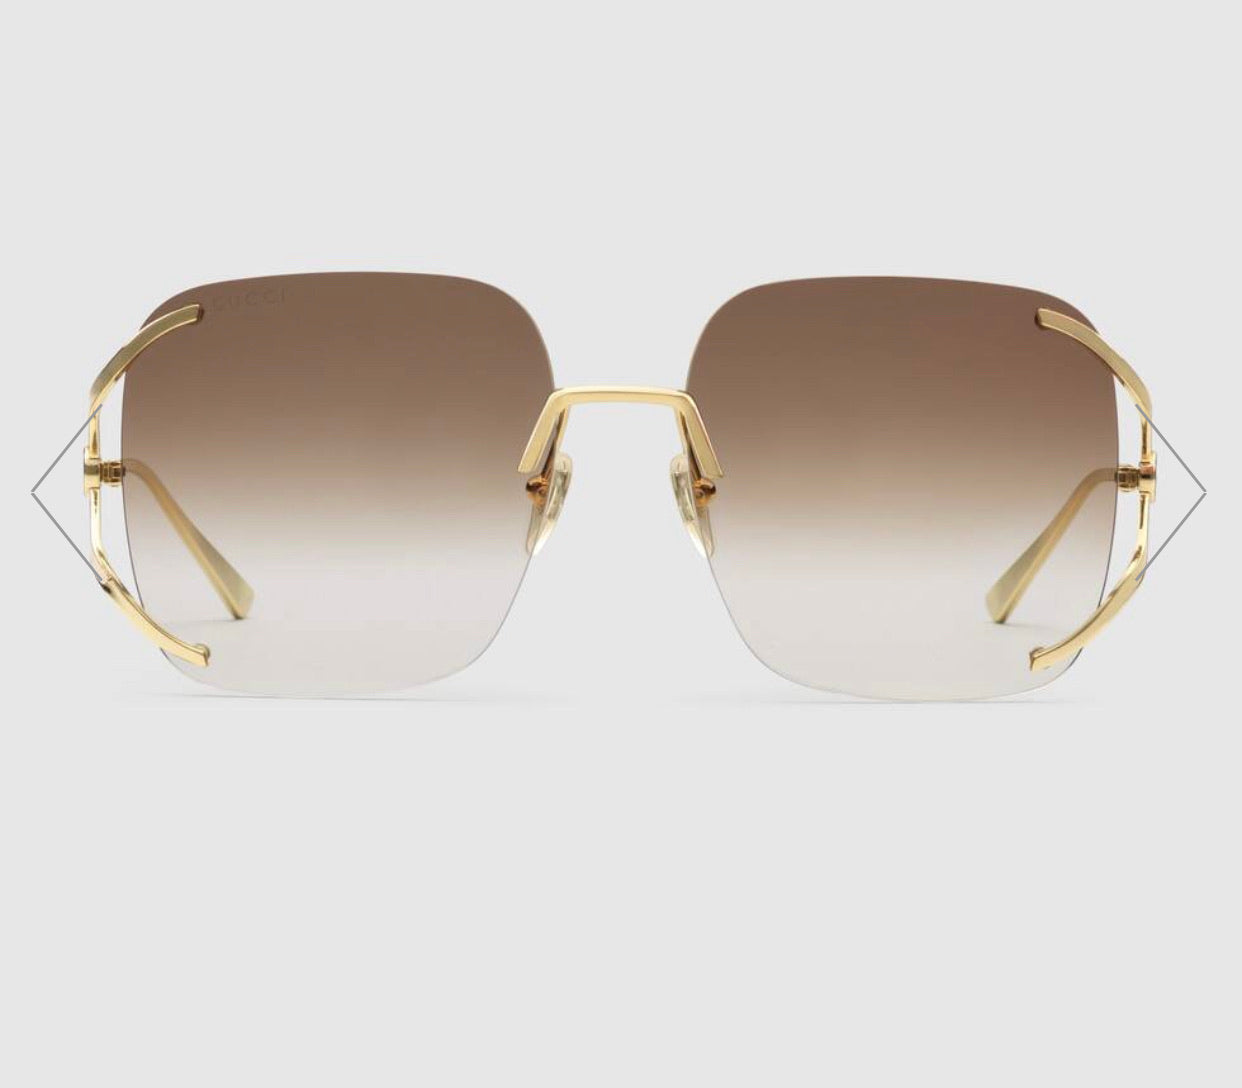 Gucci Rimless Sunglass